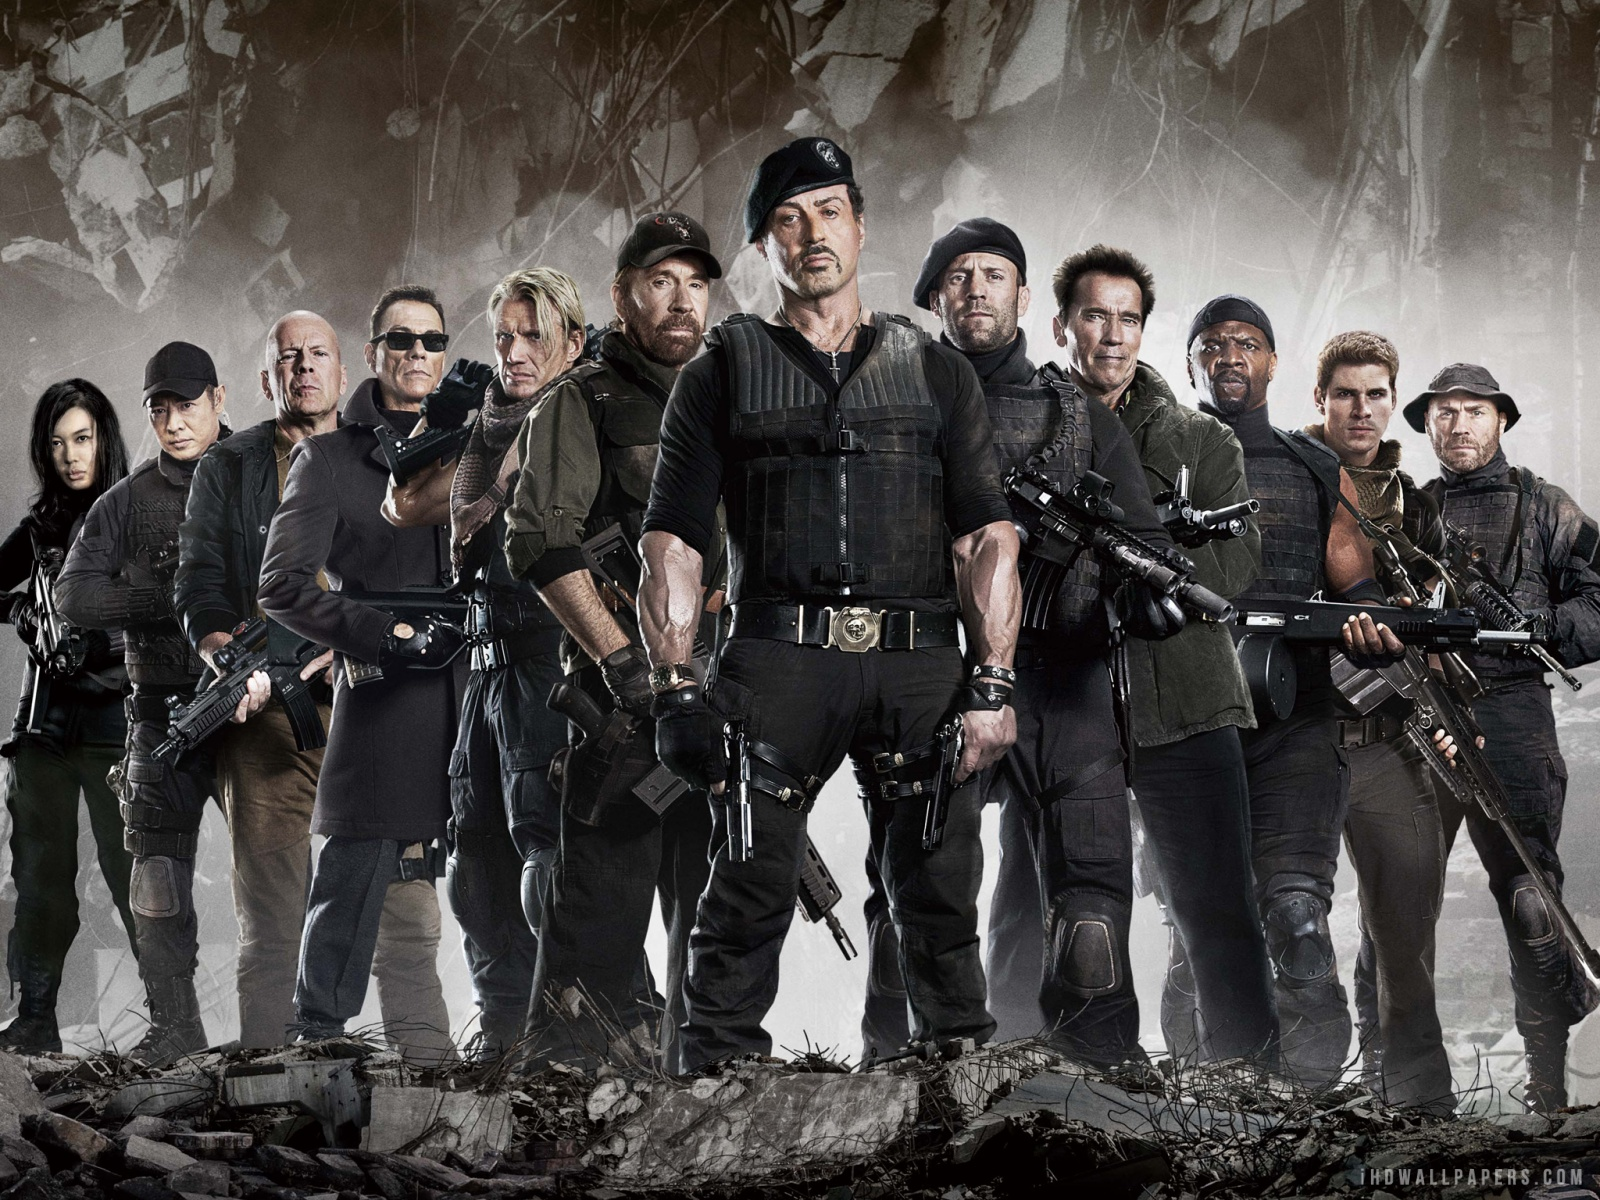 HQ The Expendables Wallpapers | File 779.63Kb